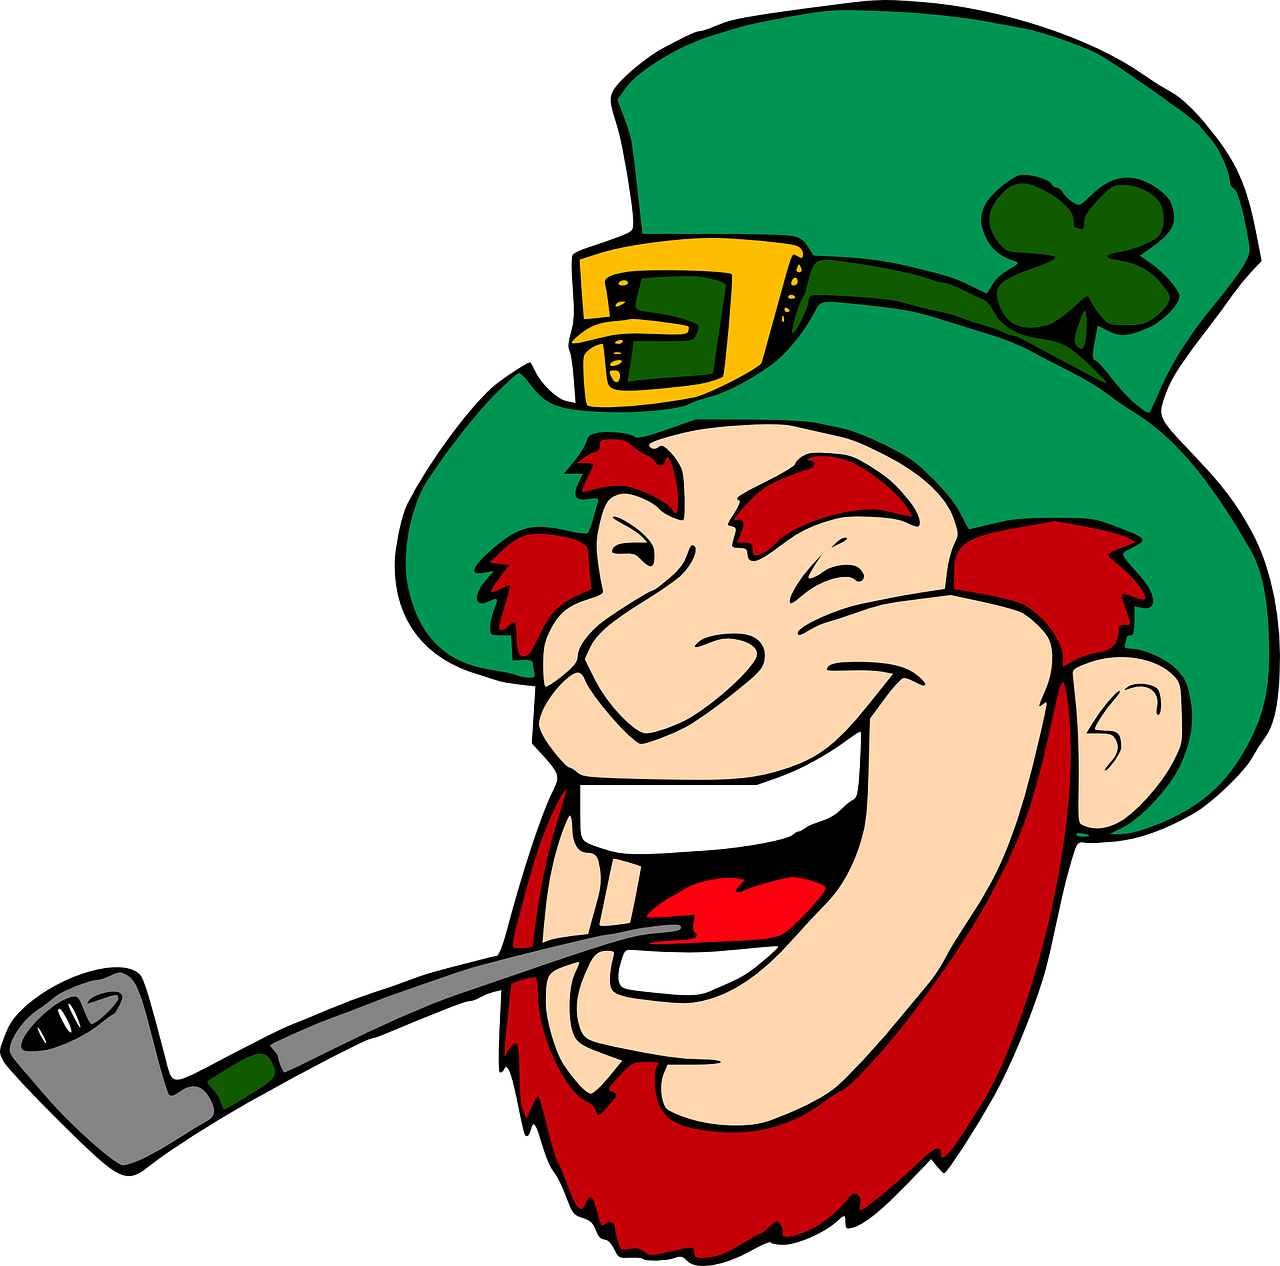 leprechaun,laughing,fairy,folklore,happy,face,head,green,irish,smoking,pipe,free vector graphics,free pictures, free photos, free images, royalty free, free illustrations, public domain